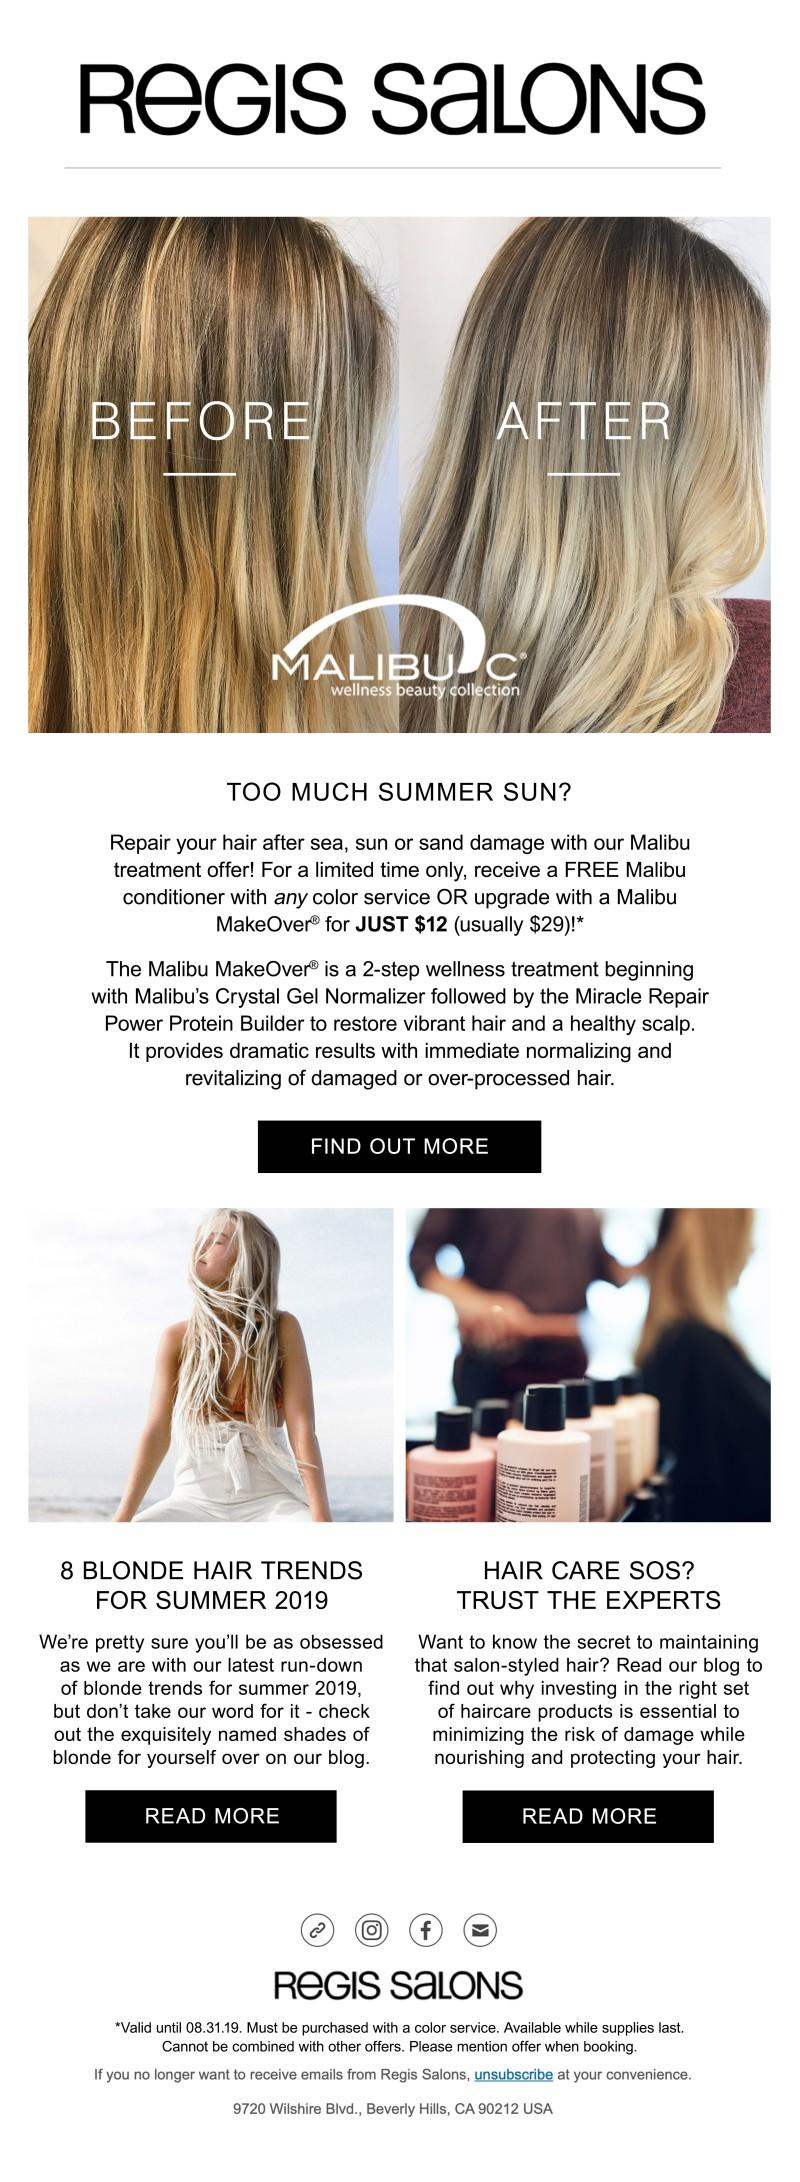 Malibu Treatment from Regis Salon